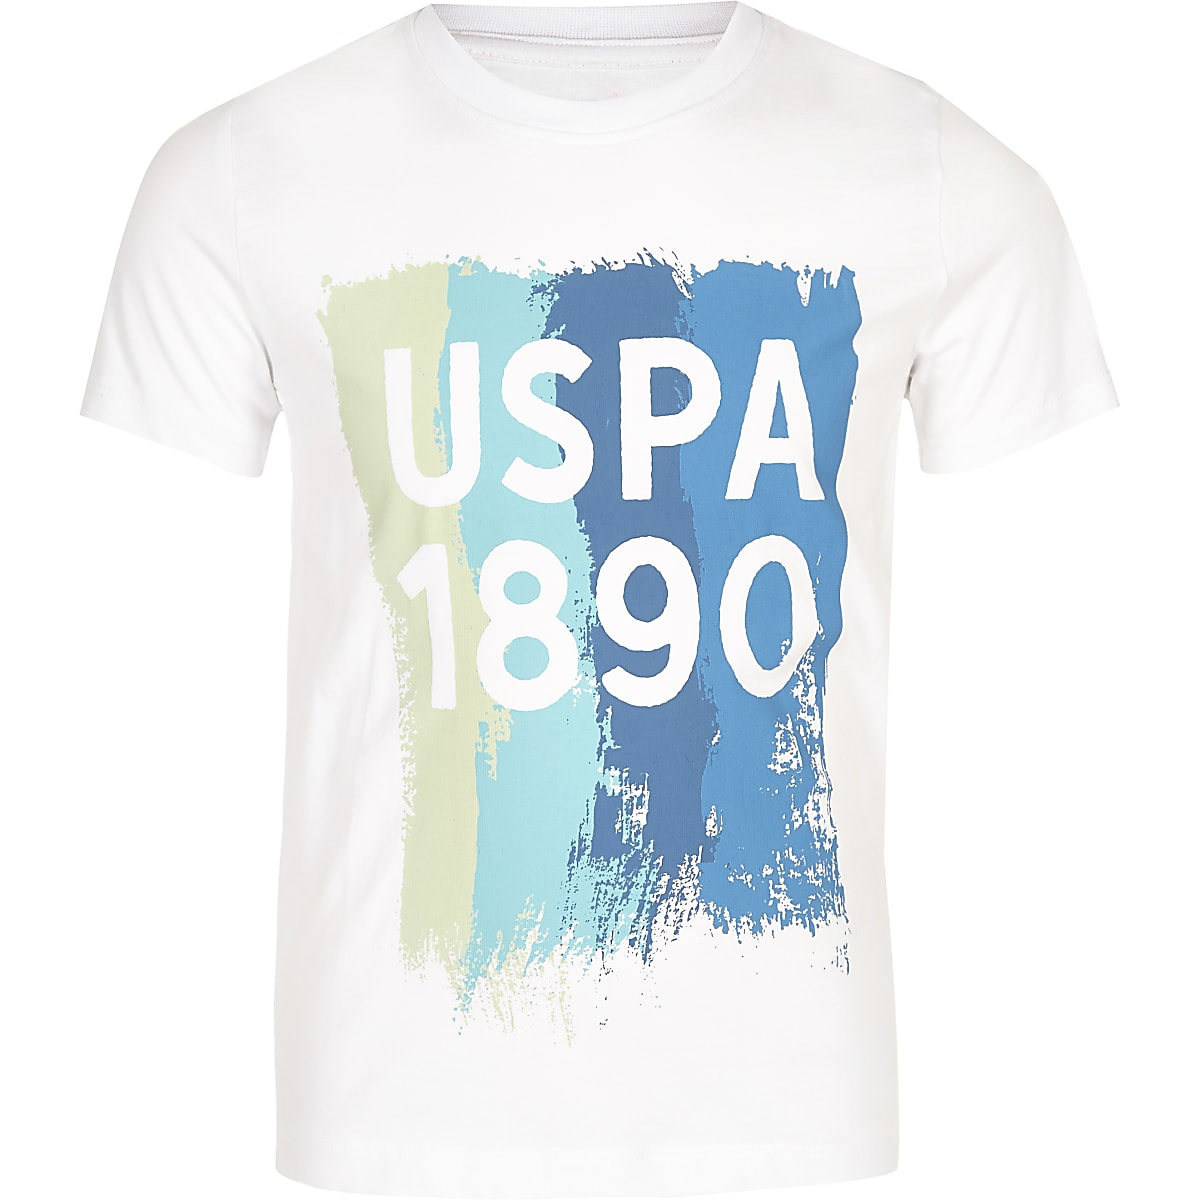 Boys white U.S. Polo Assn. 1890 T-shirt